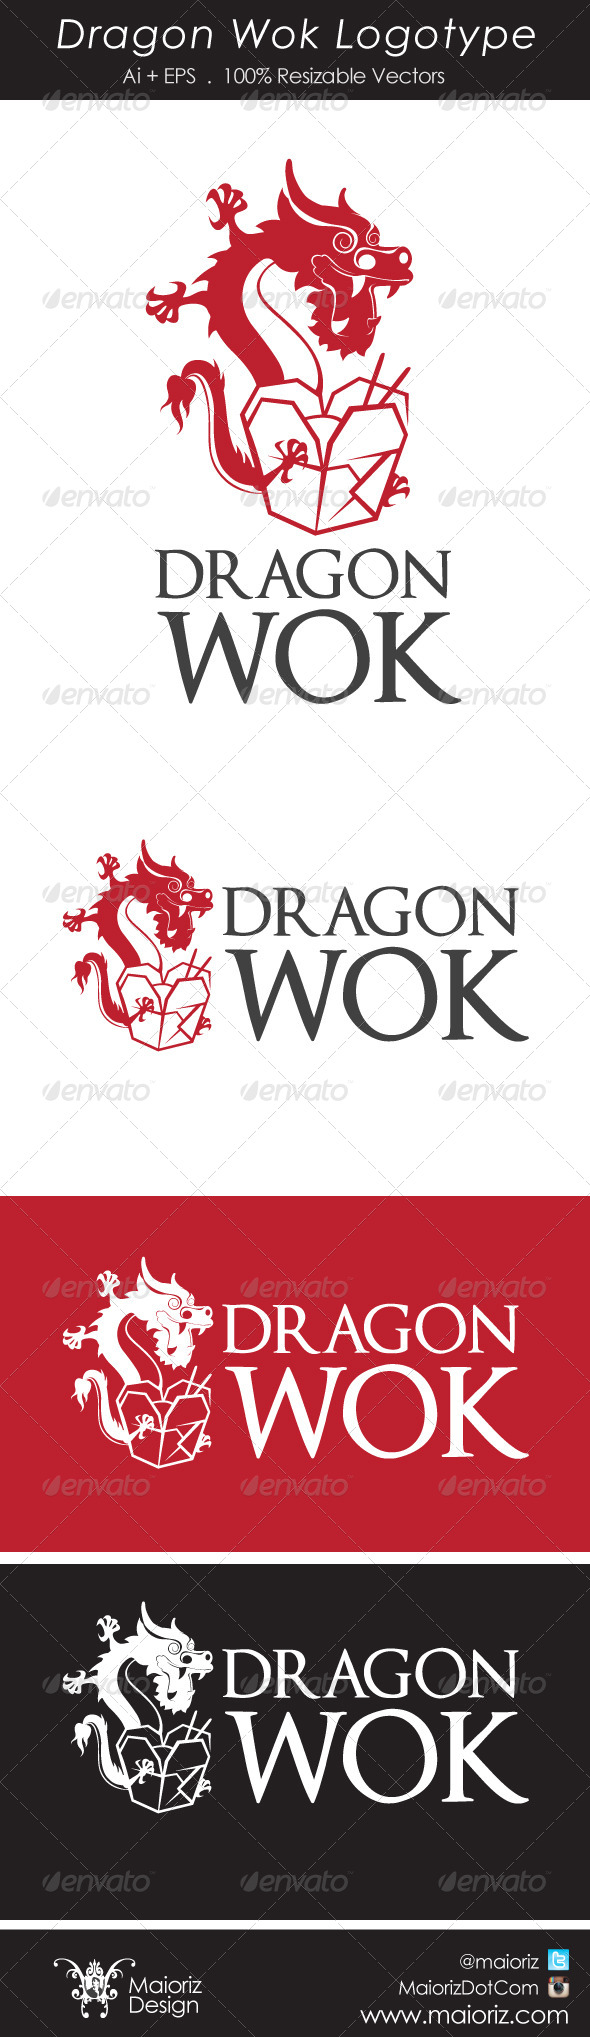 Dragon Wok Logotype - Food Logo Templates